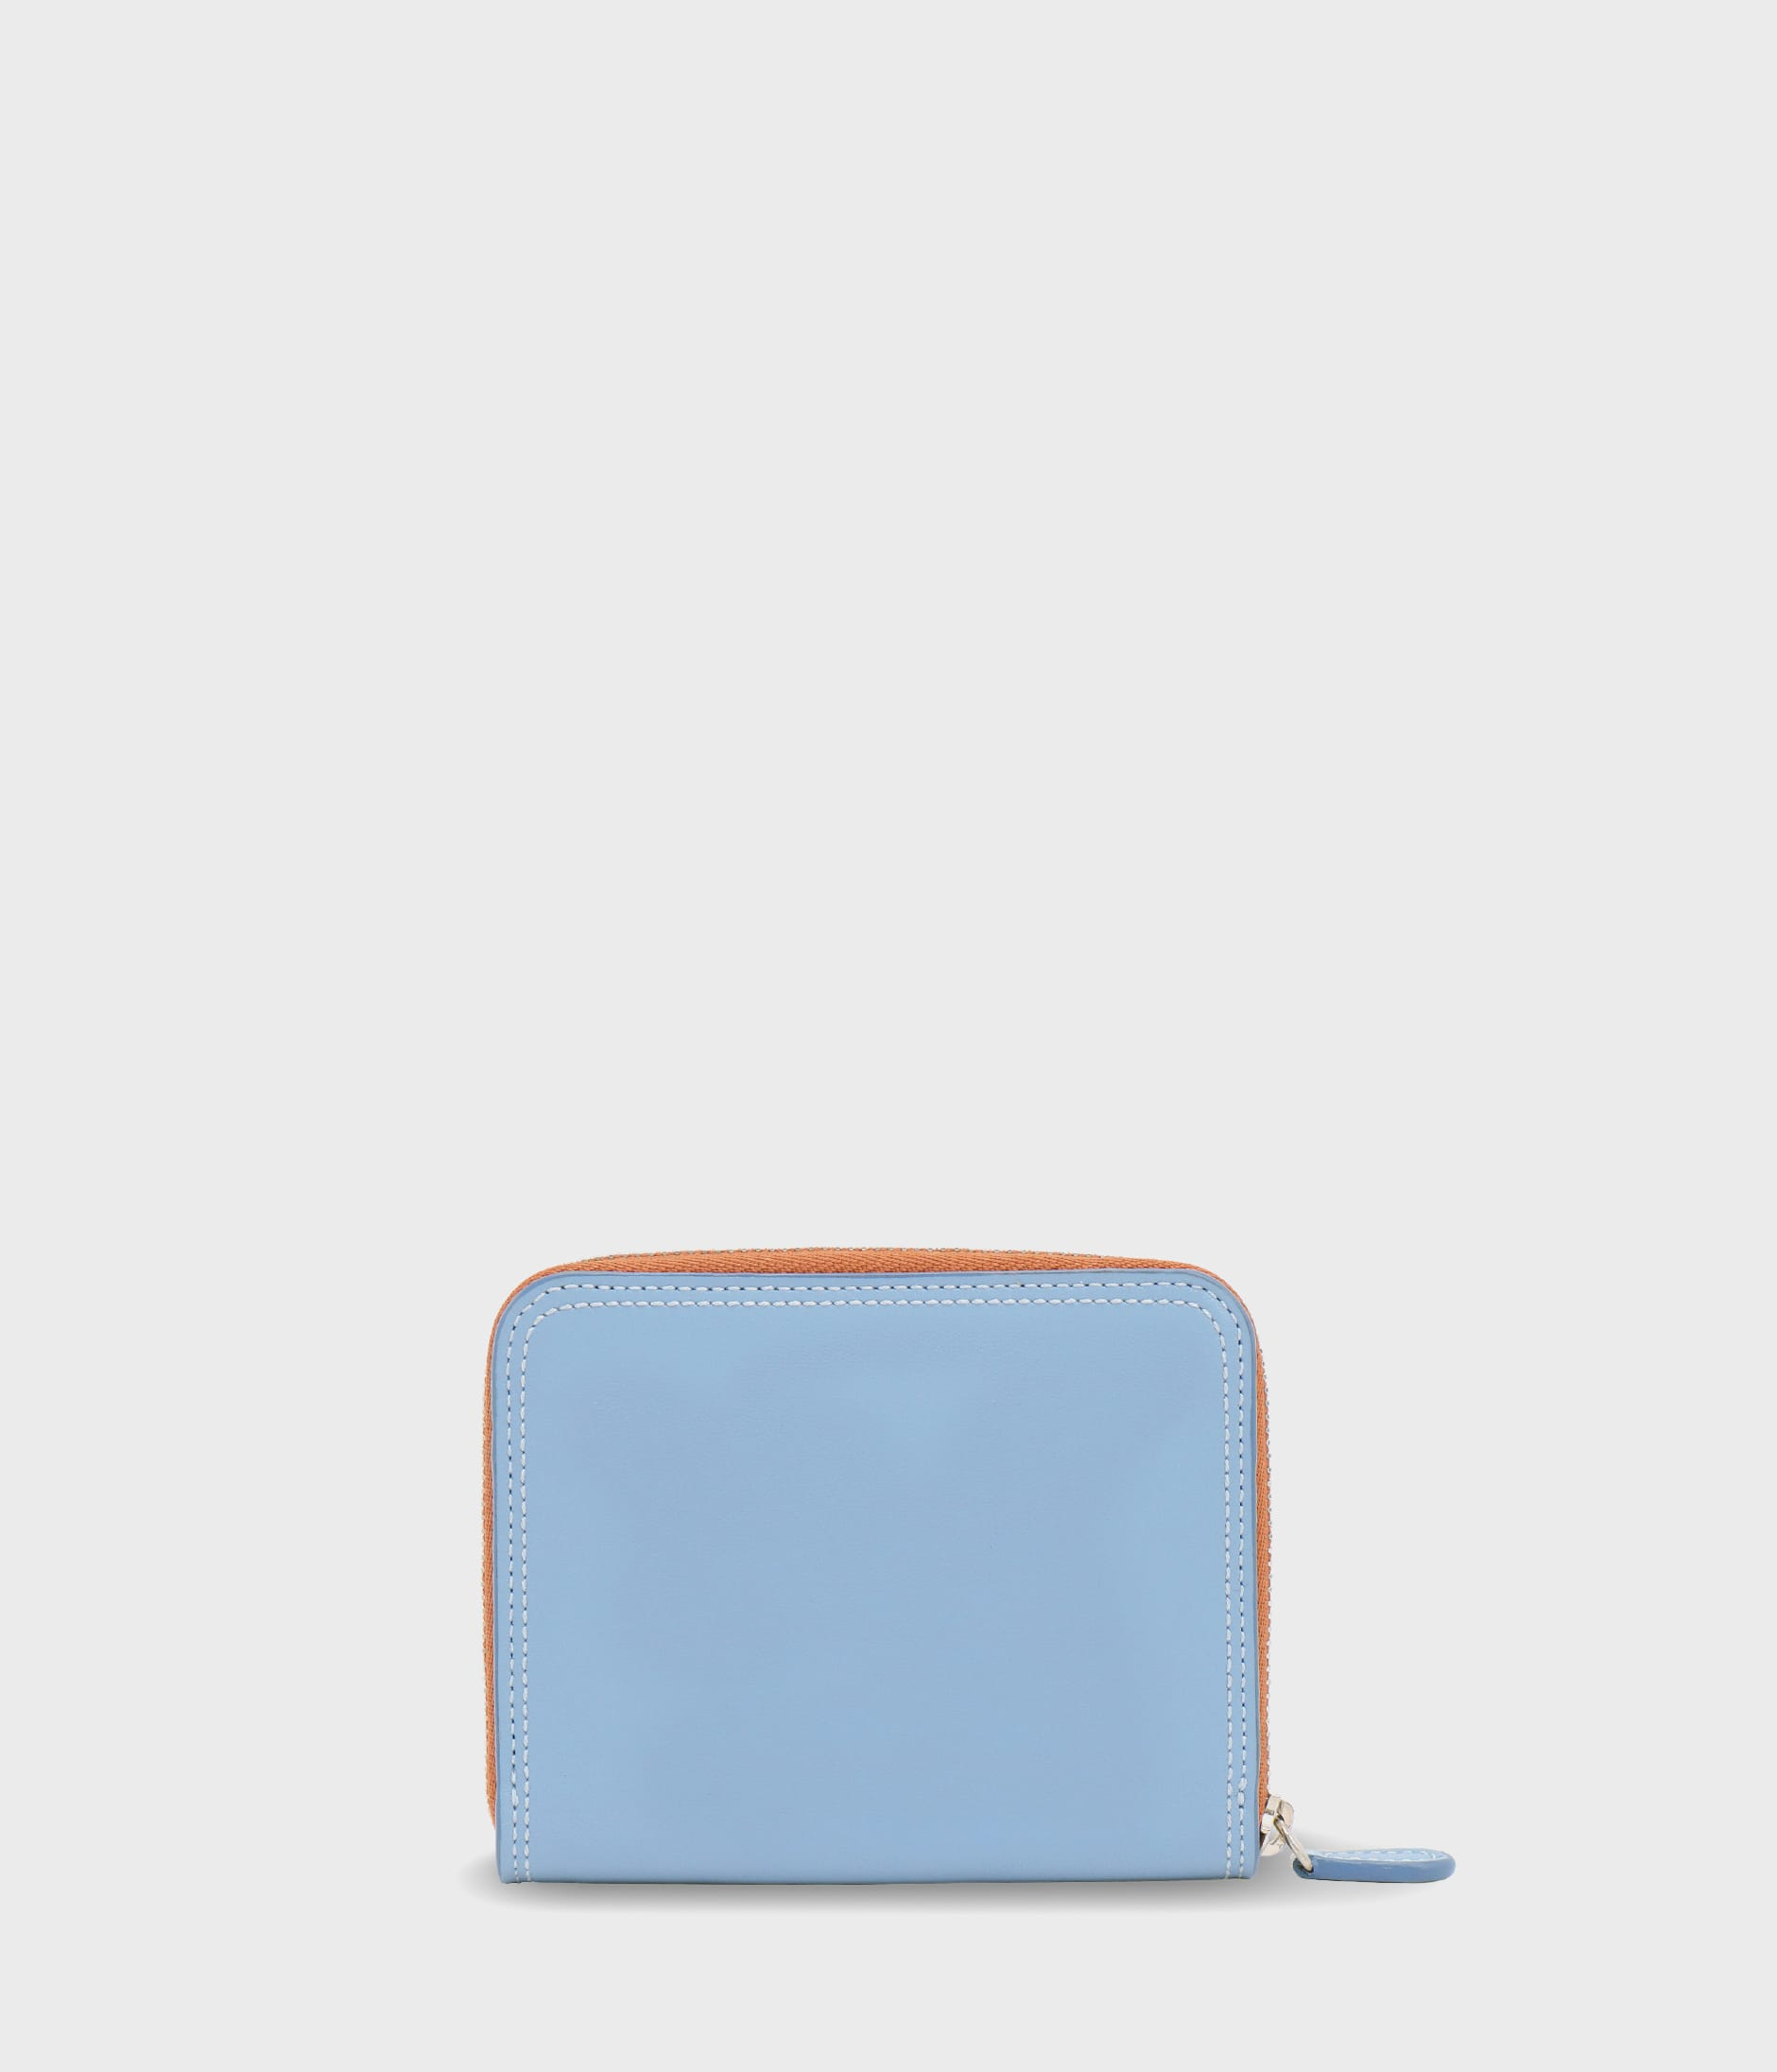 SMALL ZIP AROUND PURSE 詳細画像 SKY BLUE 2